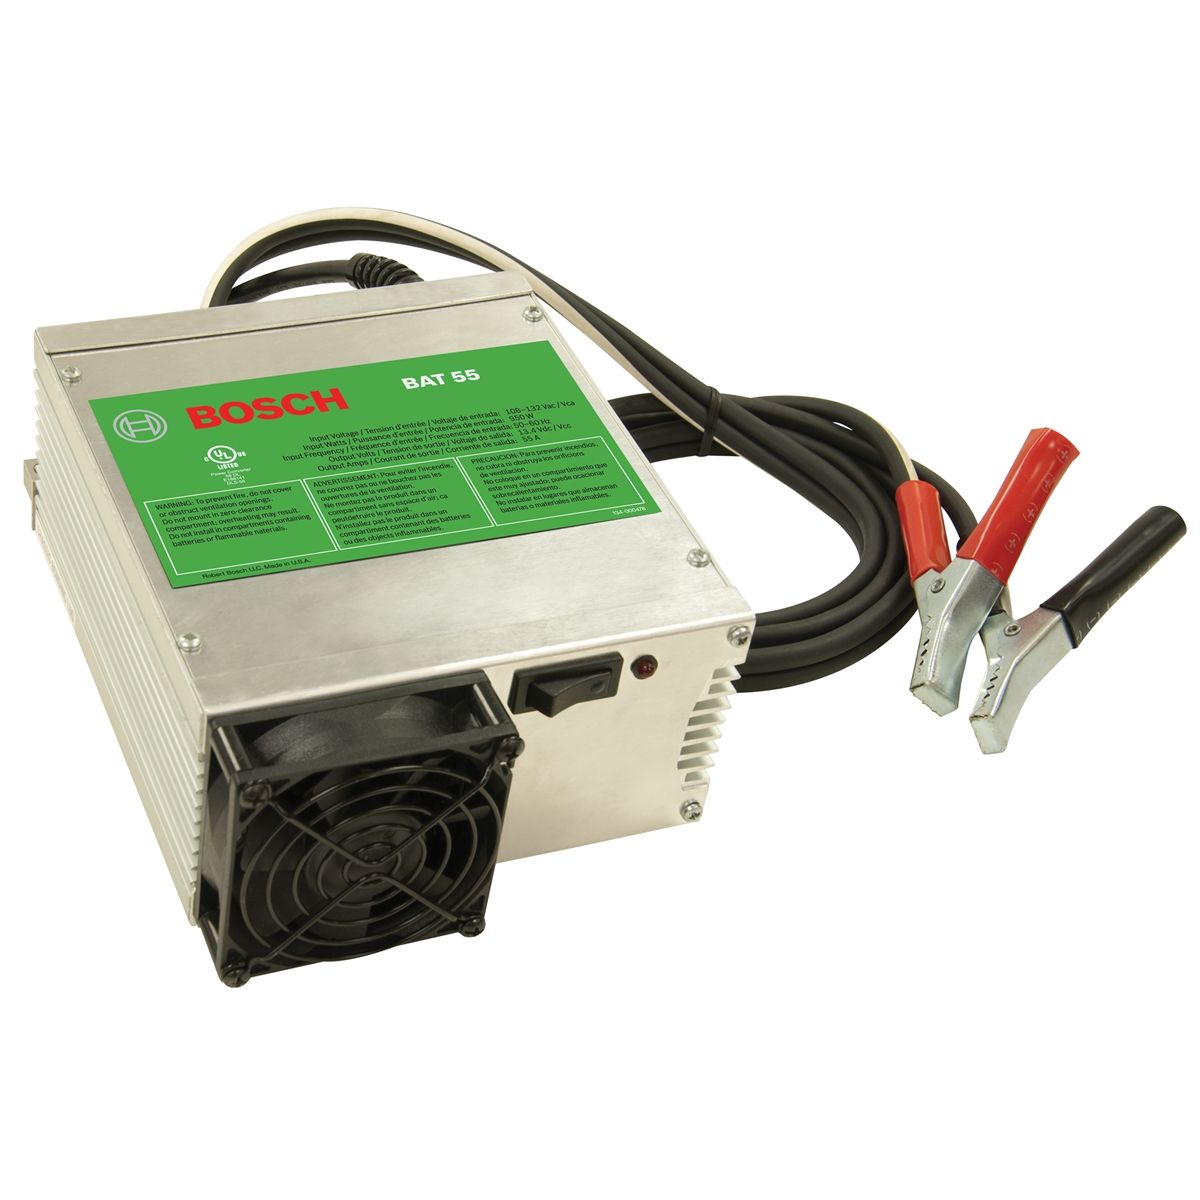 hight resolution of bat55 stable power supply and battery charger